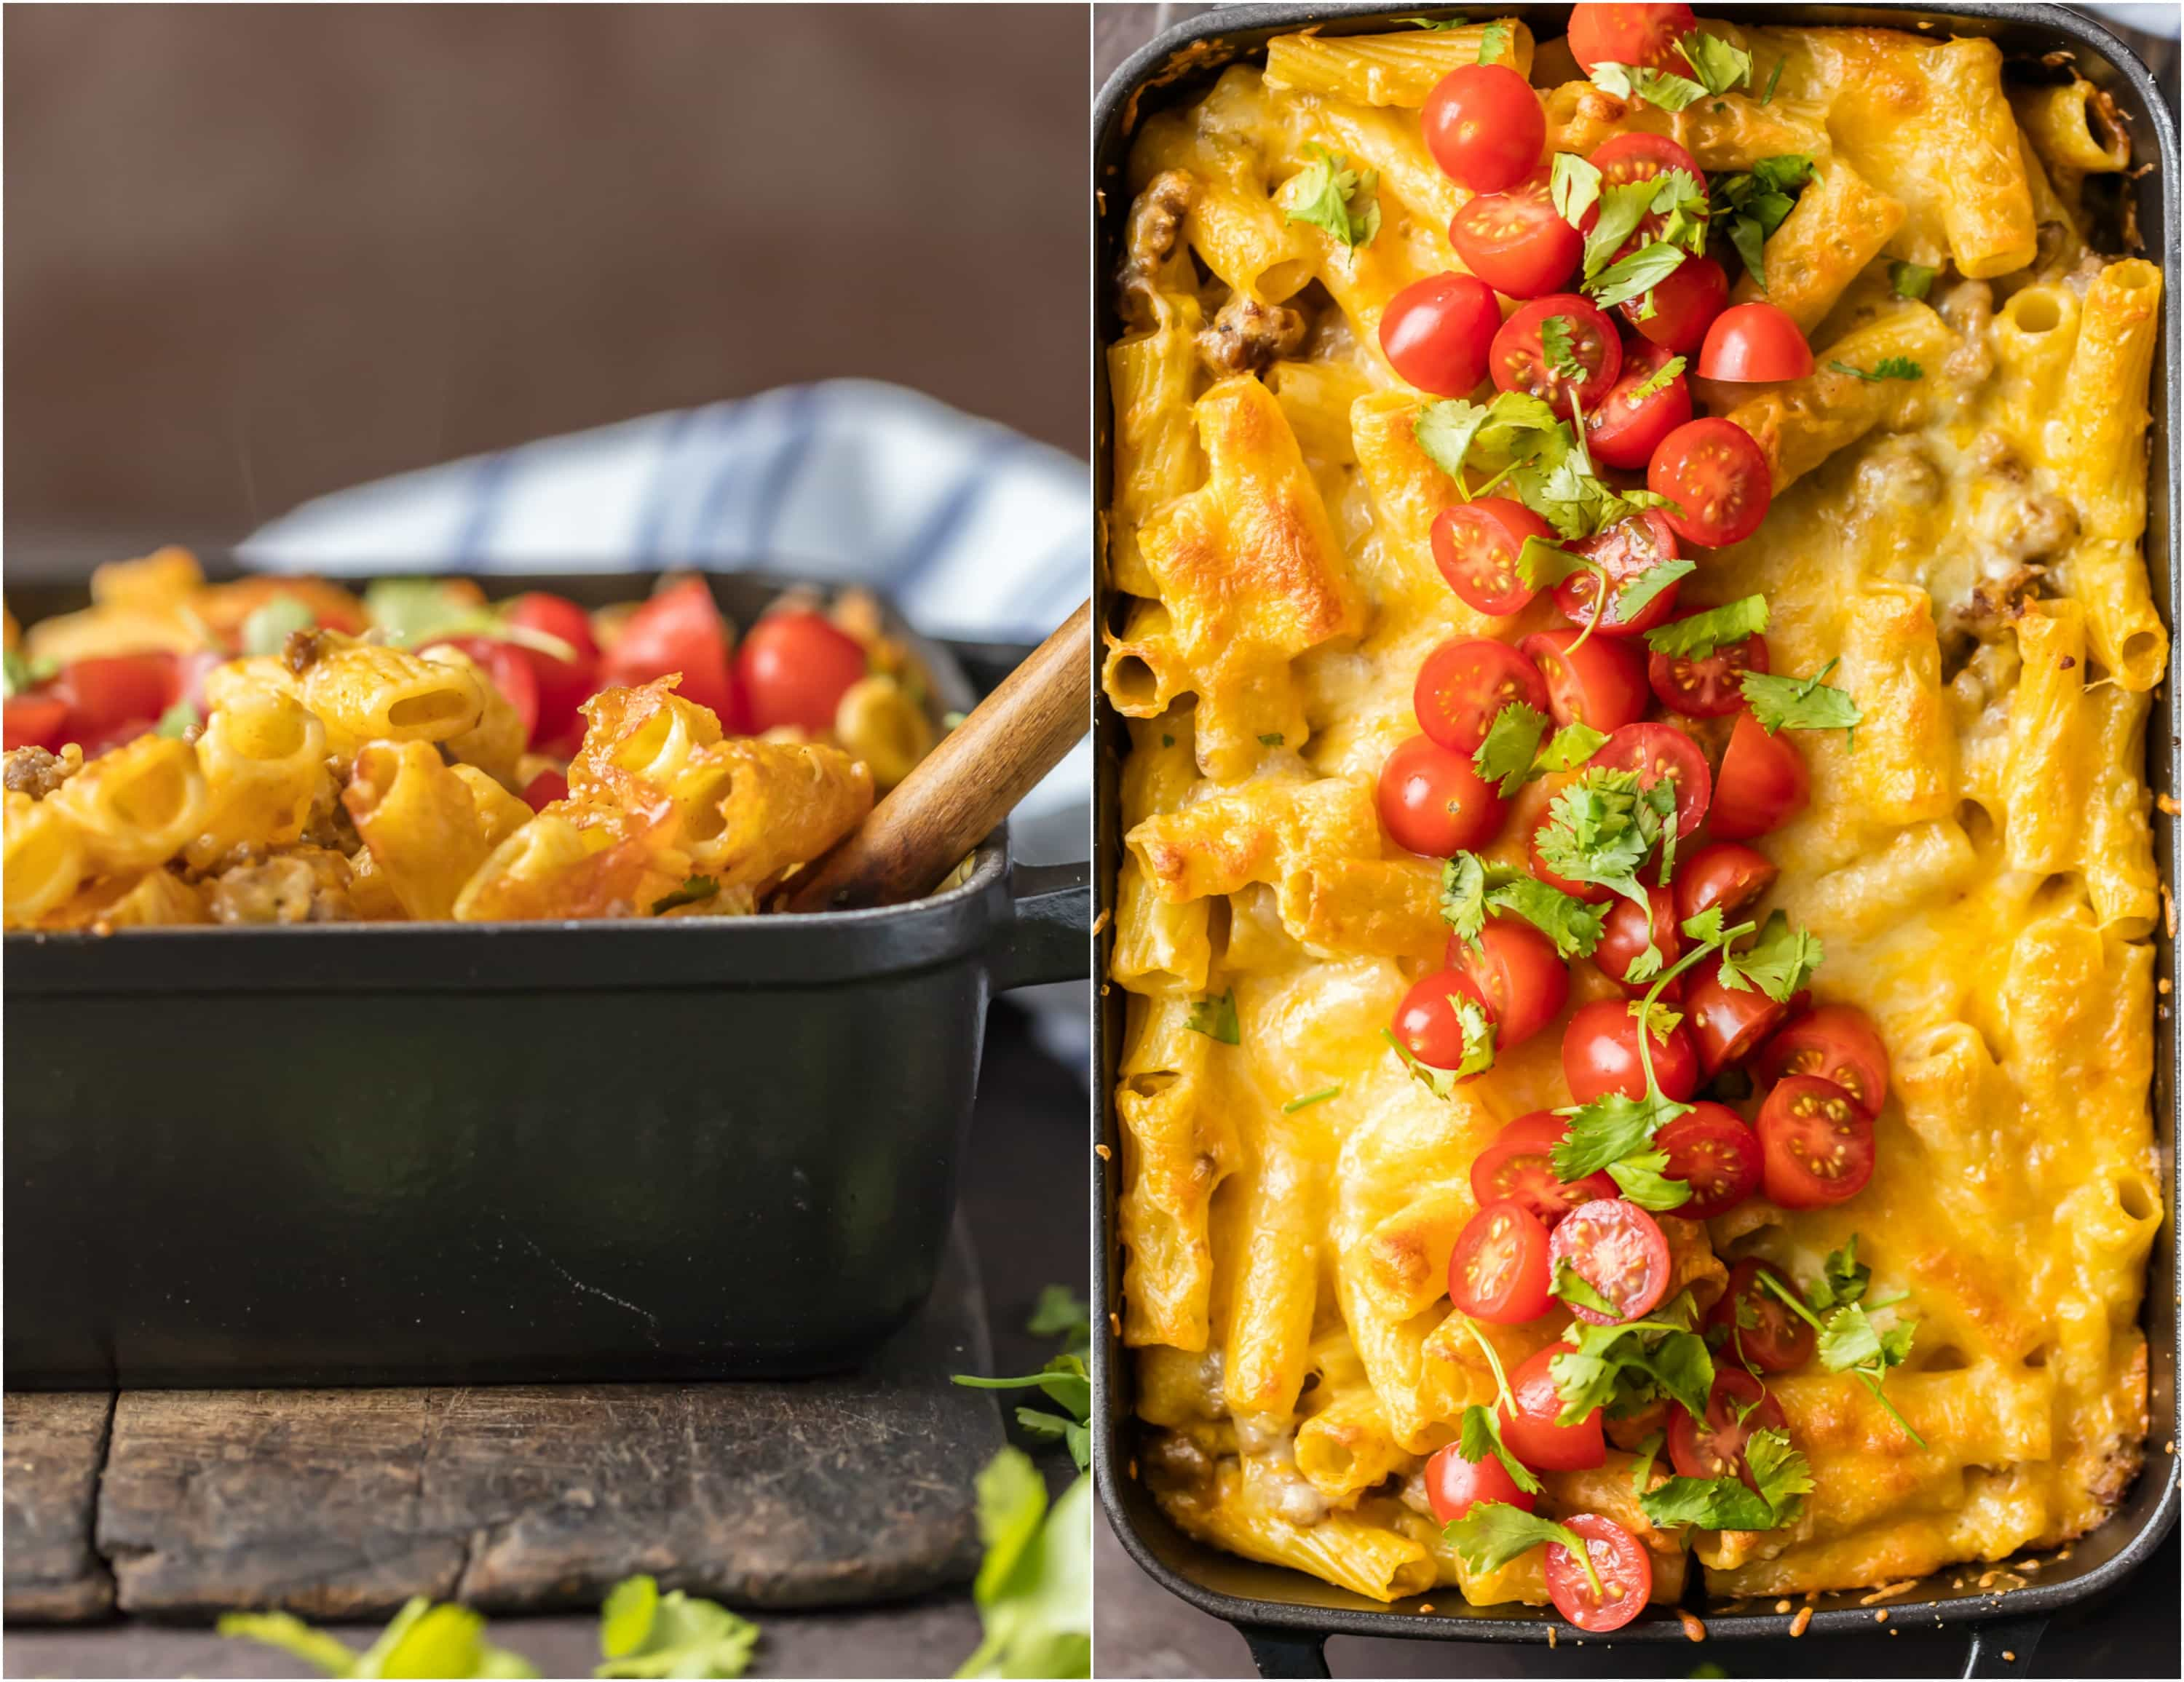 This BAKED MEXICAN MACARONI AND CHEESE can't be beat! No need to fool with a tricky cheese sauce when you have this secret ingredient making things extra creamy and delicious! Spicy sausage, green chiles, macaroni and cheese!